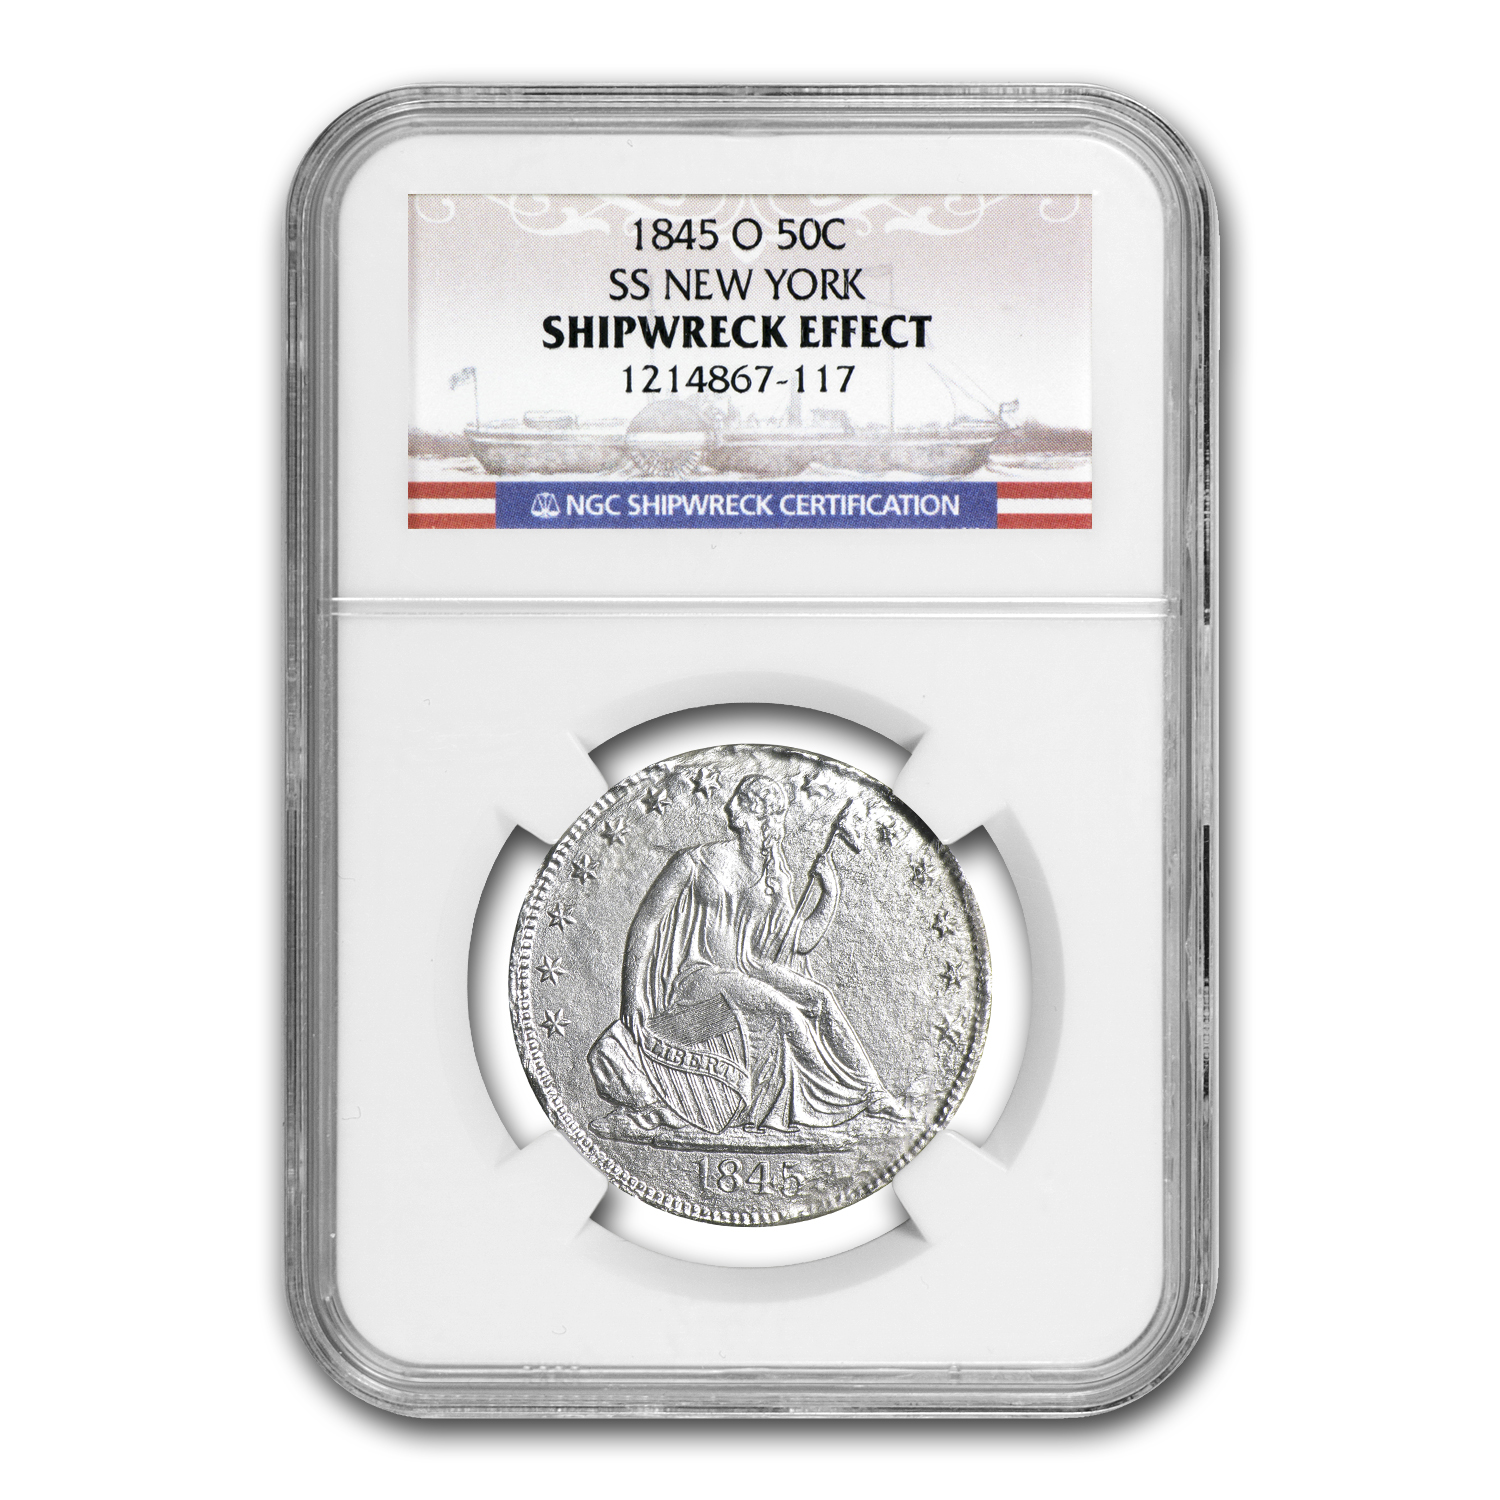 1845-O Seated Half Dollar - SS New York - NGC - Shipwreck Effect